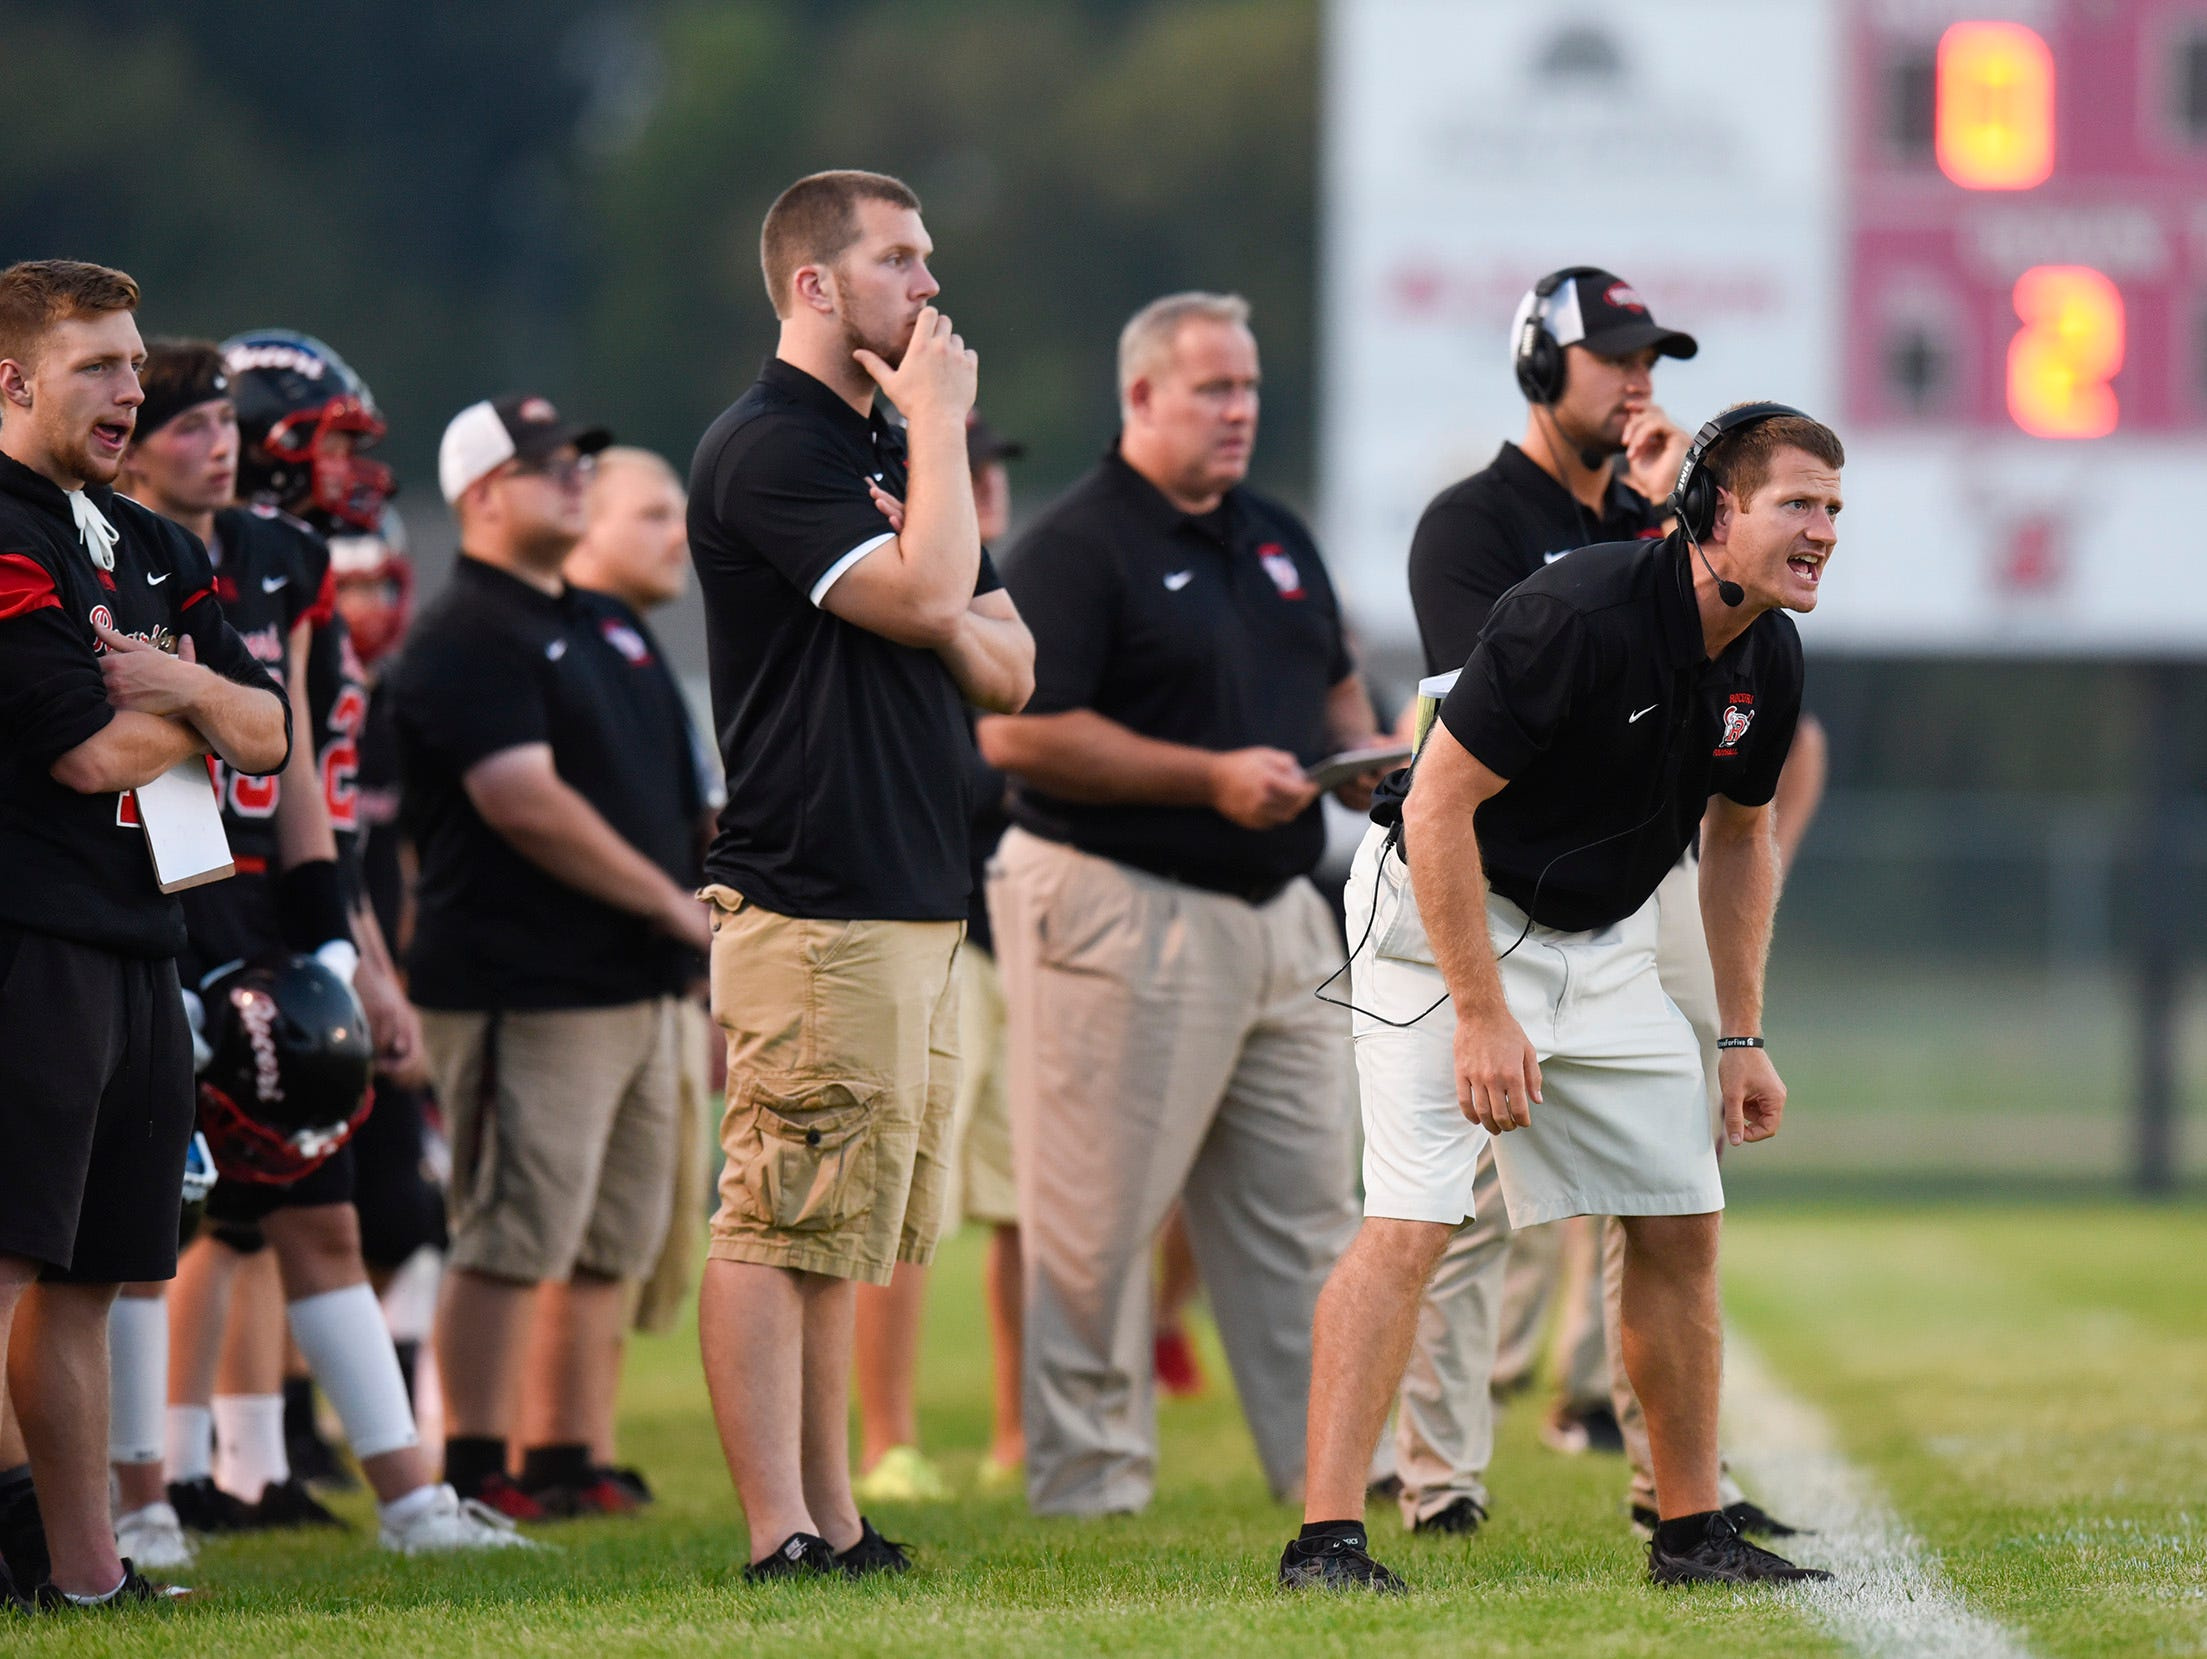 ROCORI coaches give instructions to players from the sidelines.